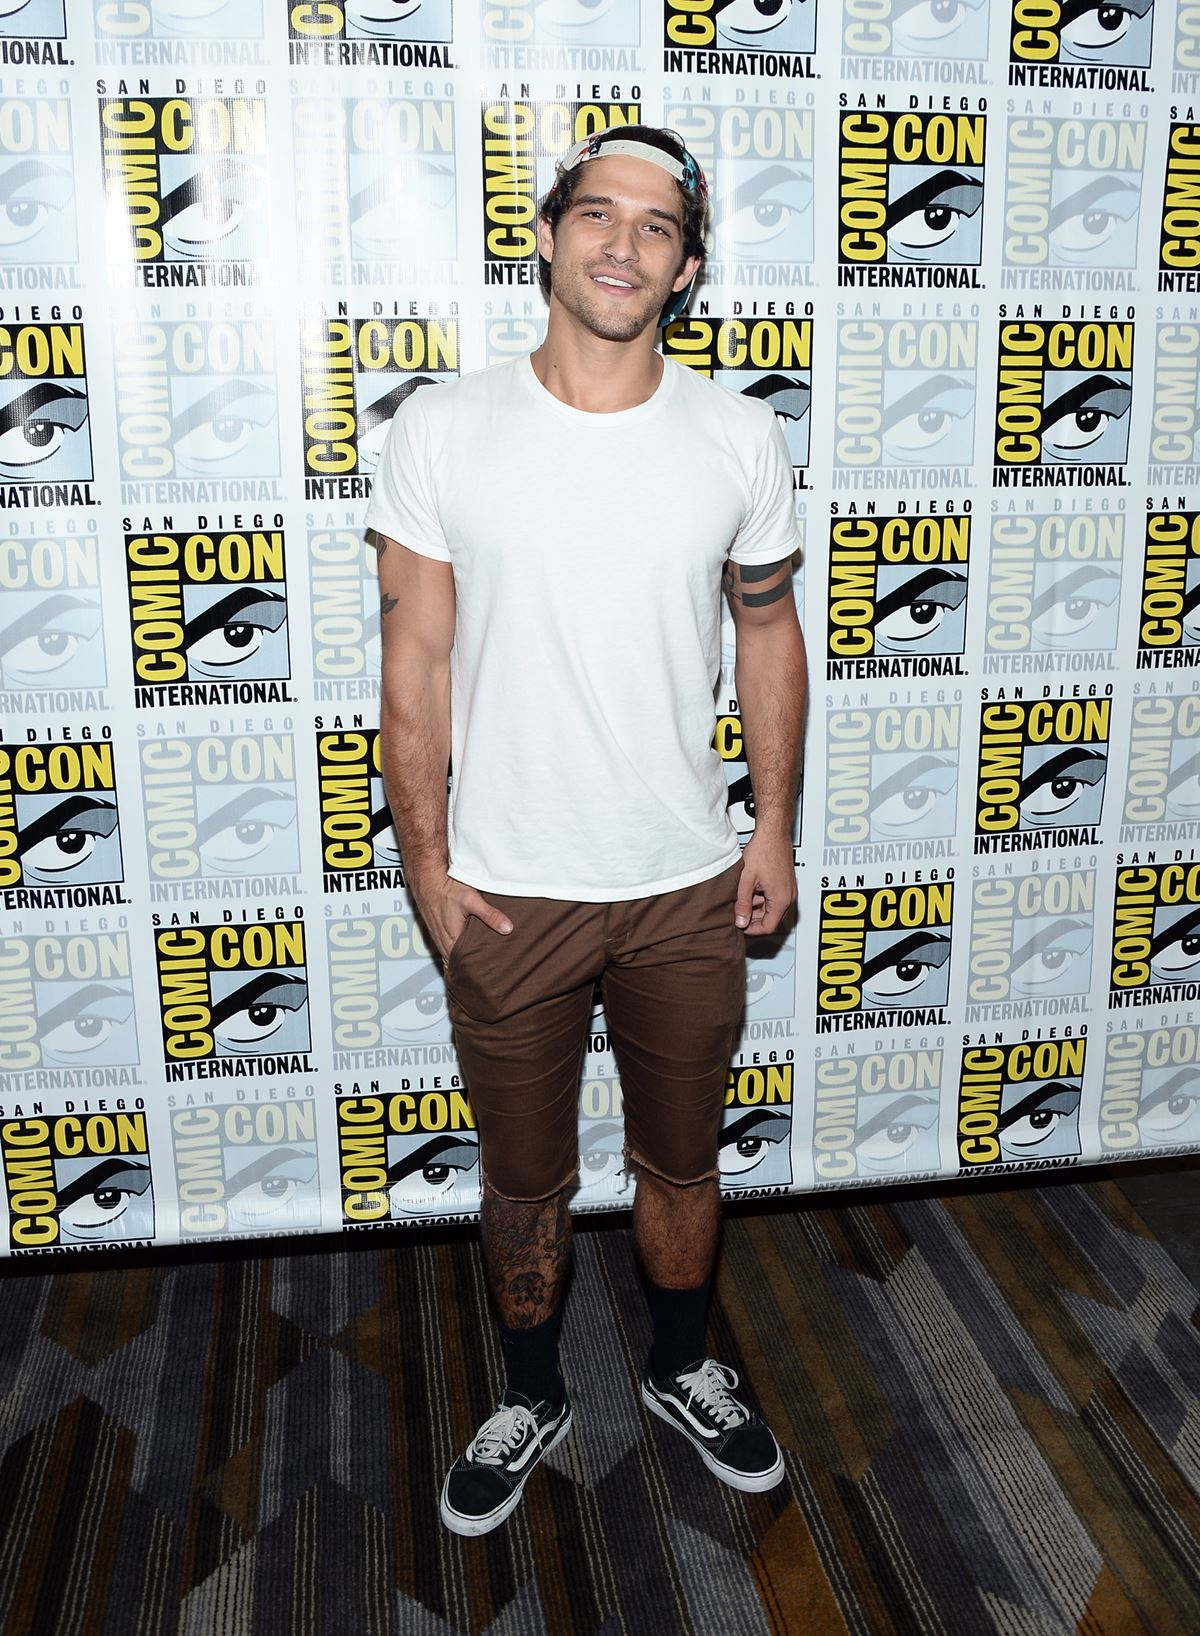 **Tyler Posey** was there, being his adorable self, as per usual.